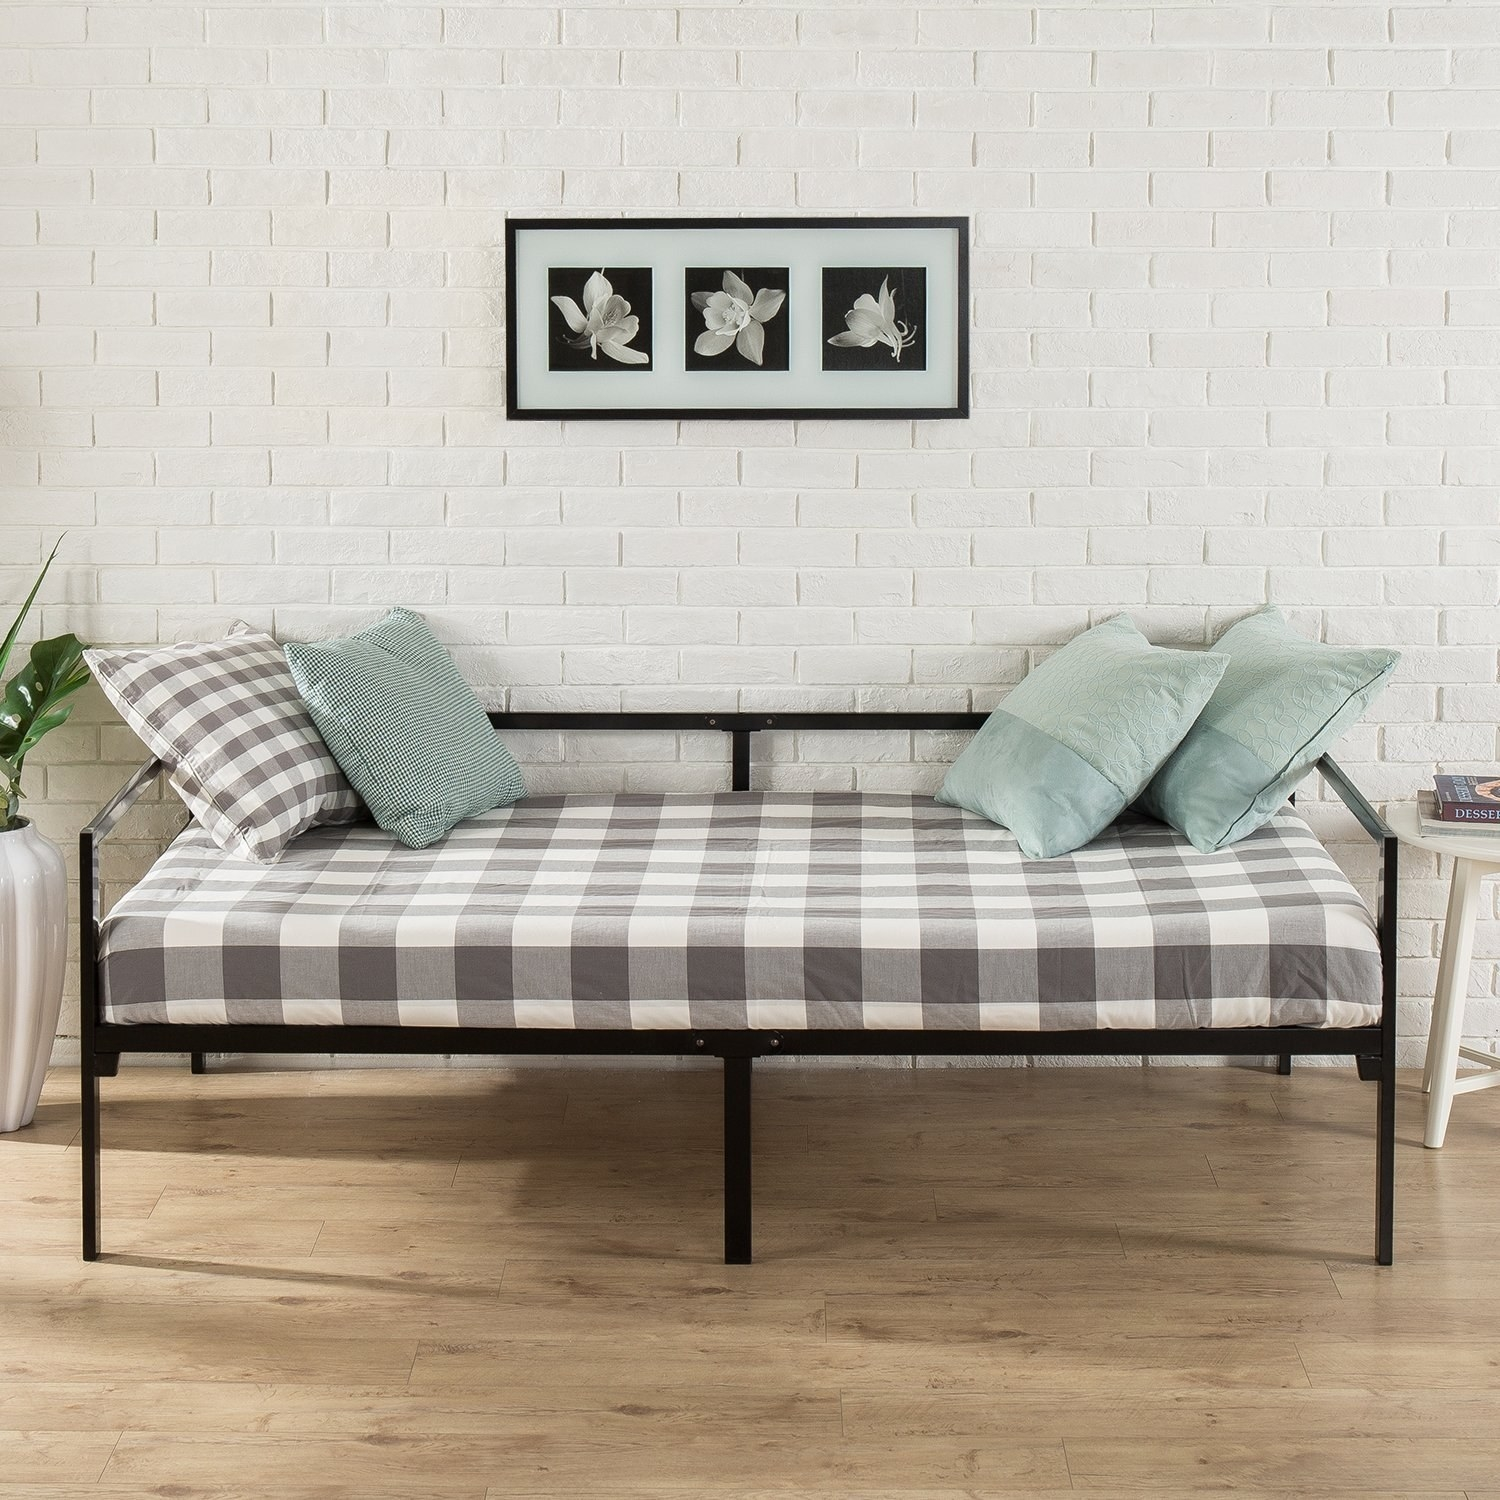 front view of the black metal daybed